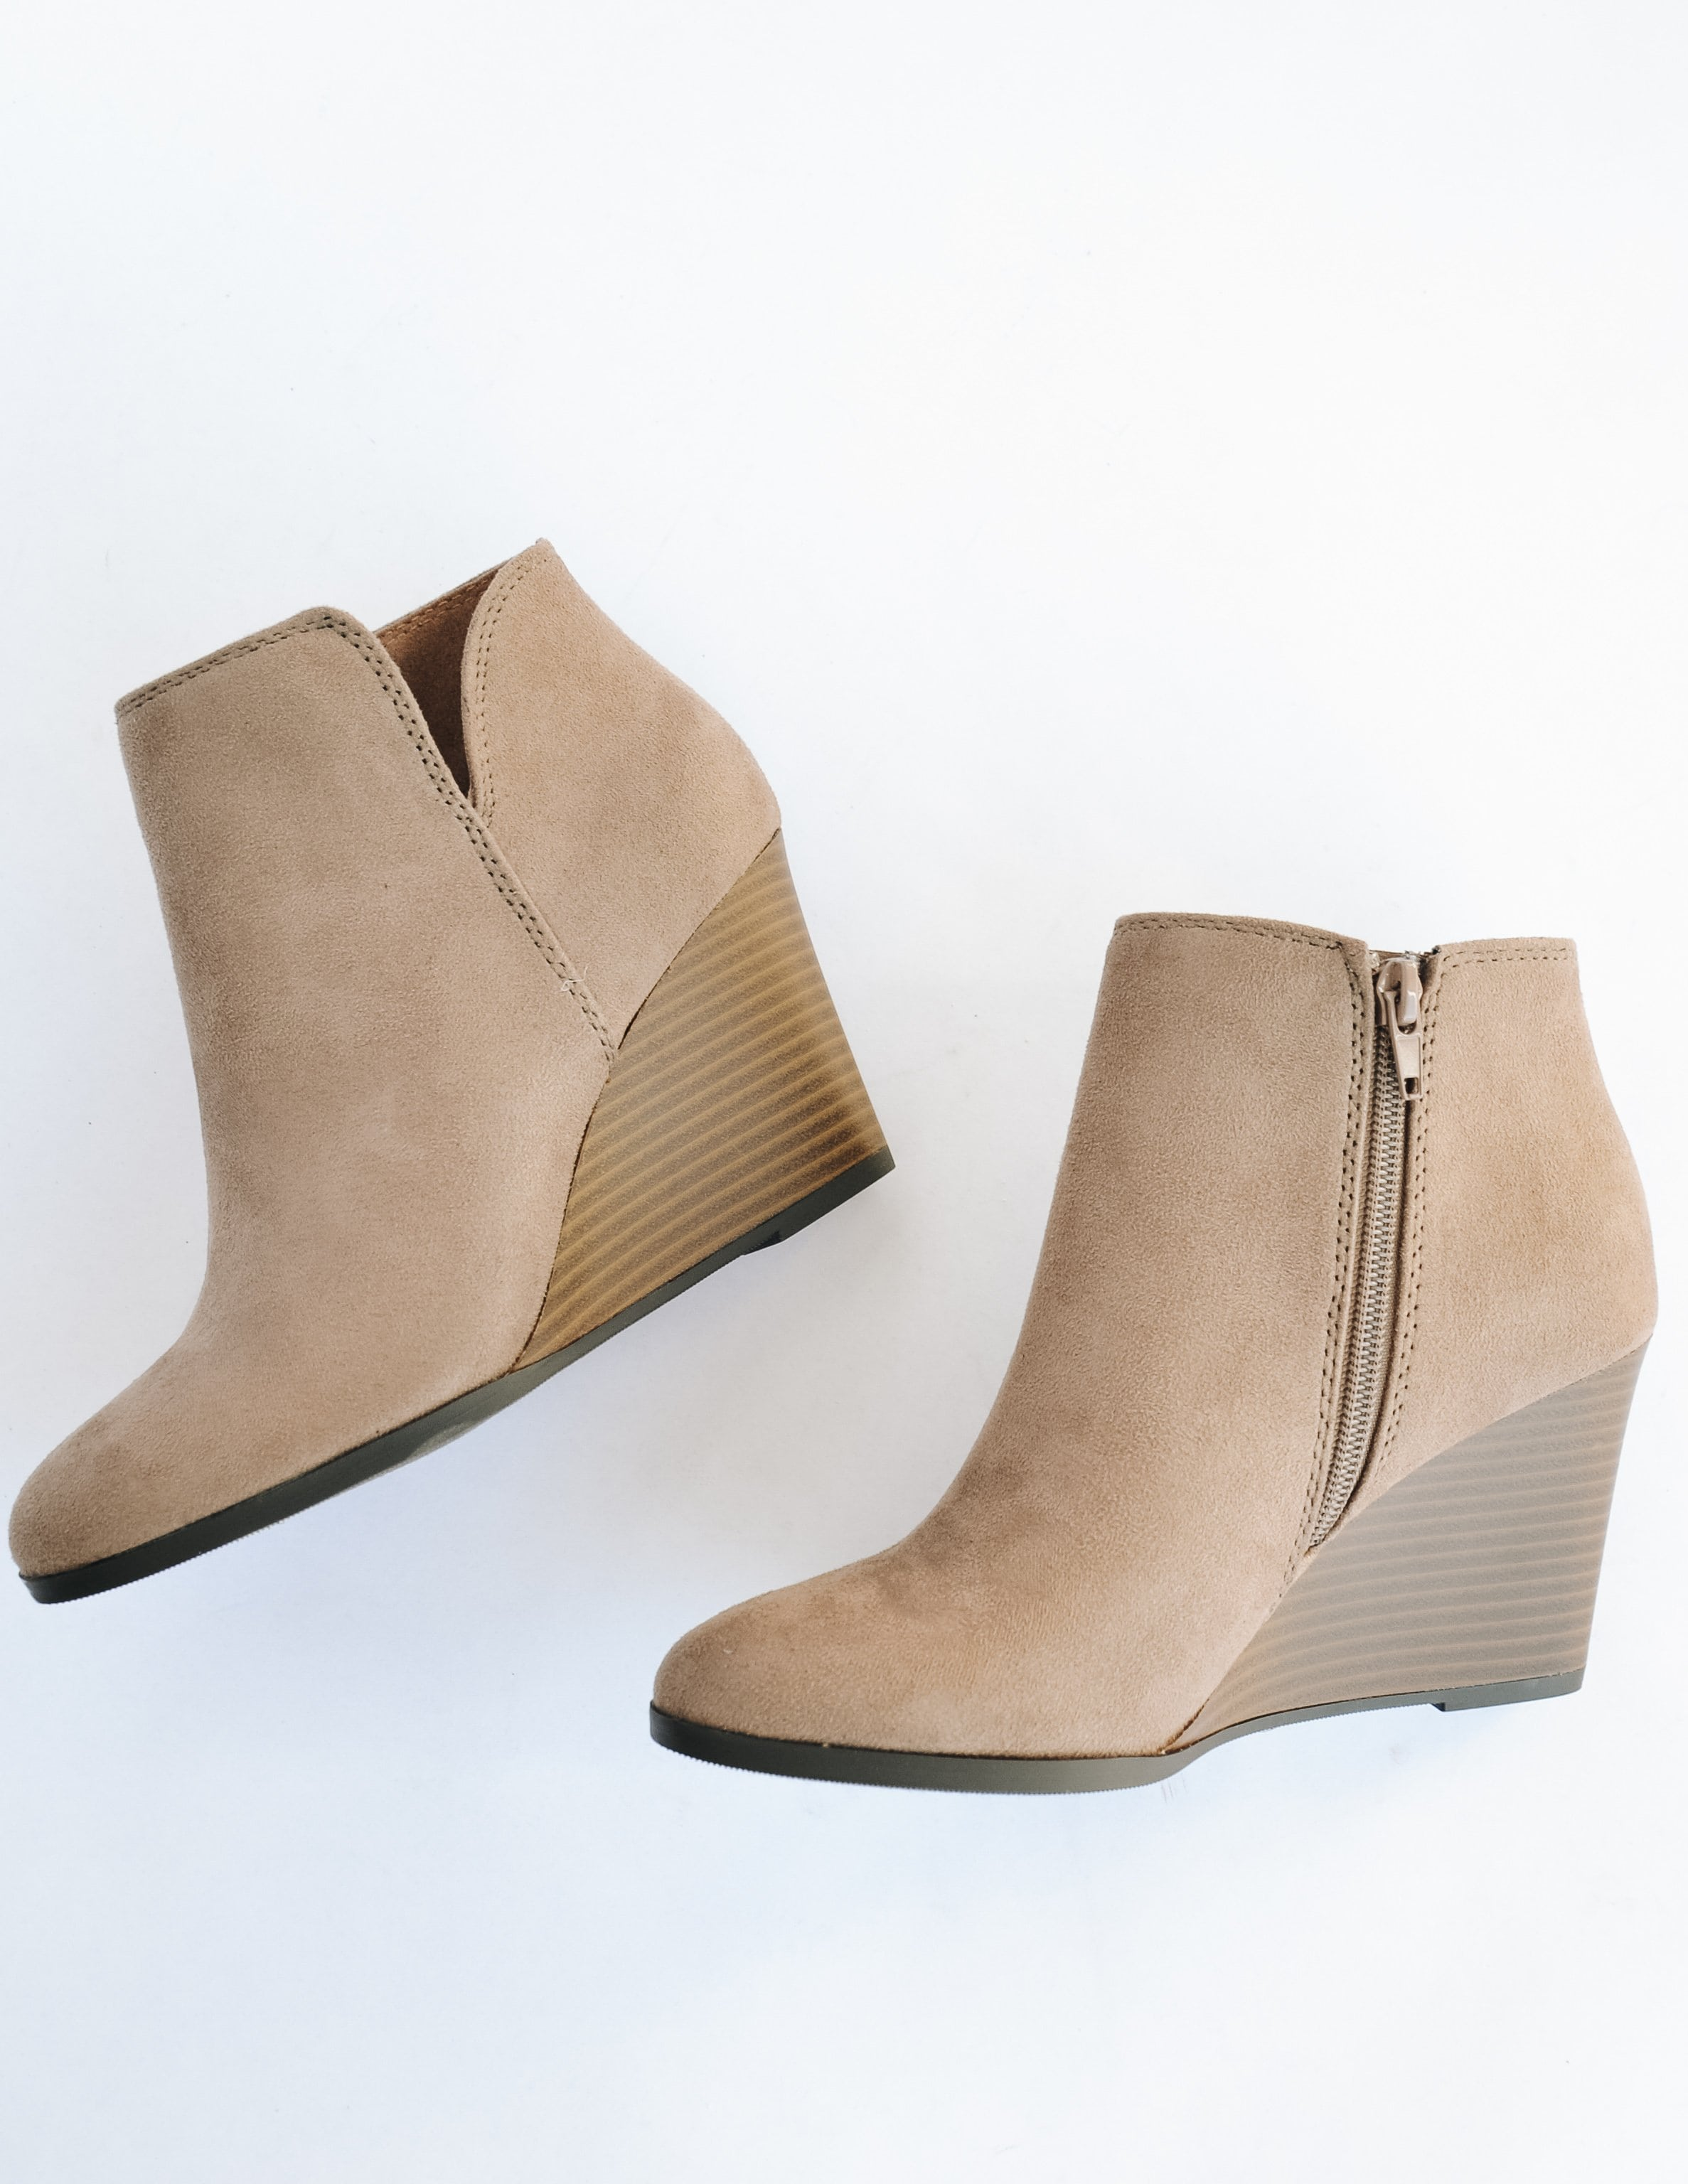 Taupe risk taker heel laying flat on white background showing inner zipper